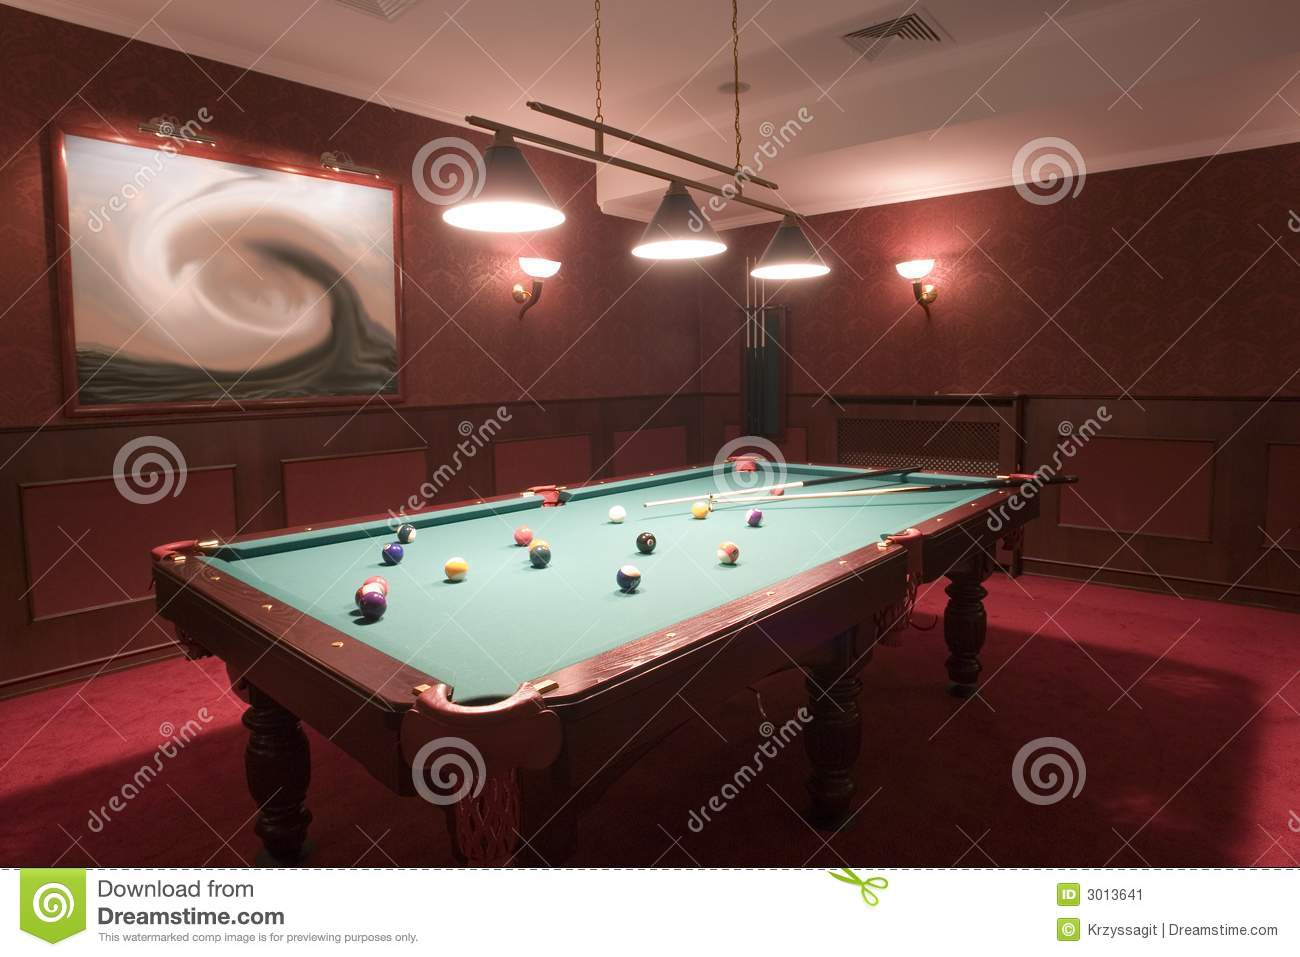 Lovely Pool Table In Elegant Red Room